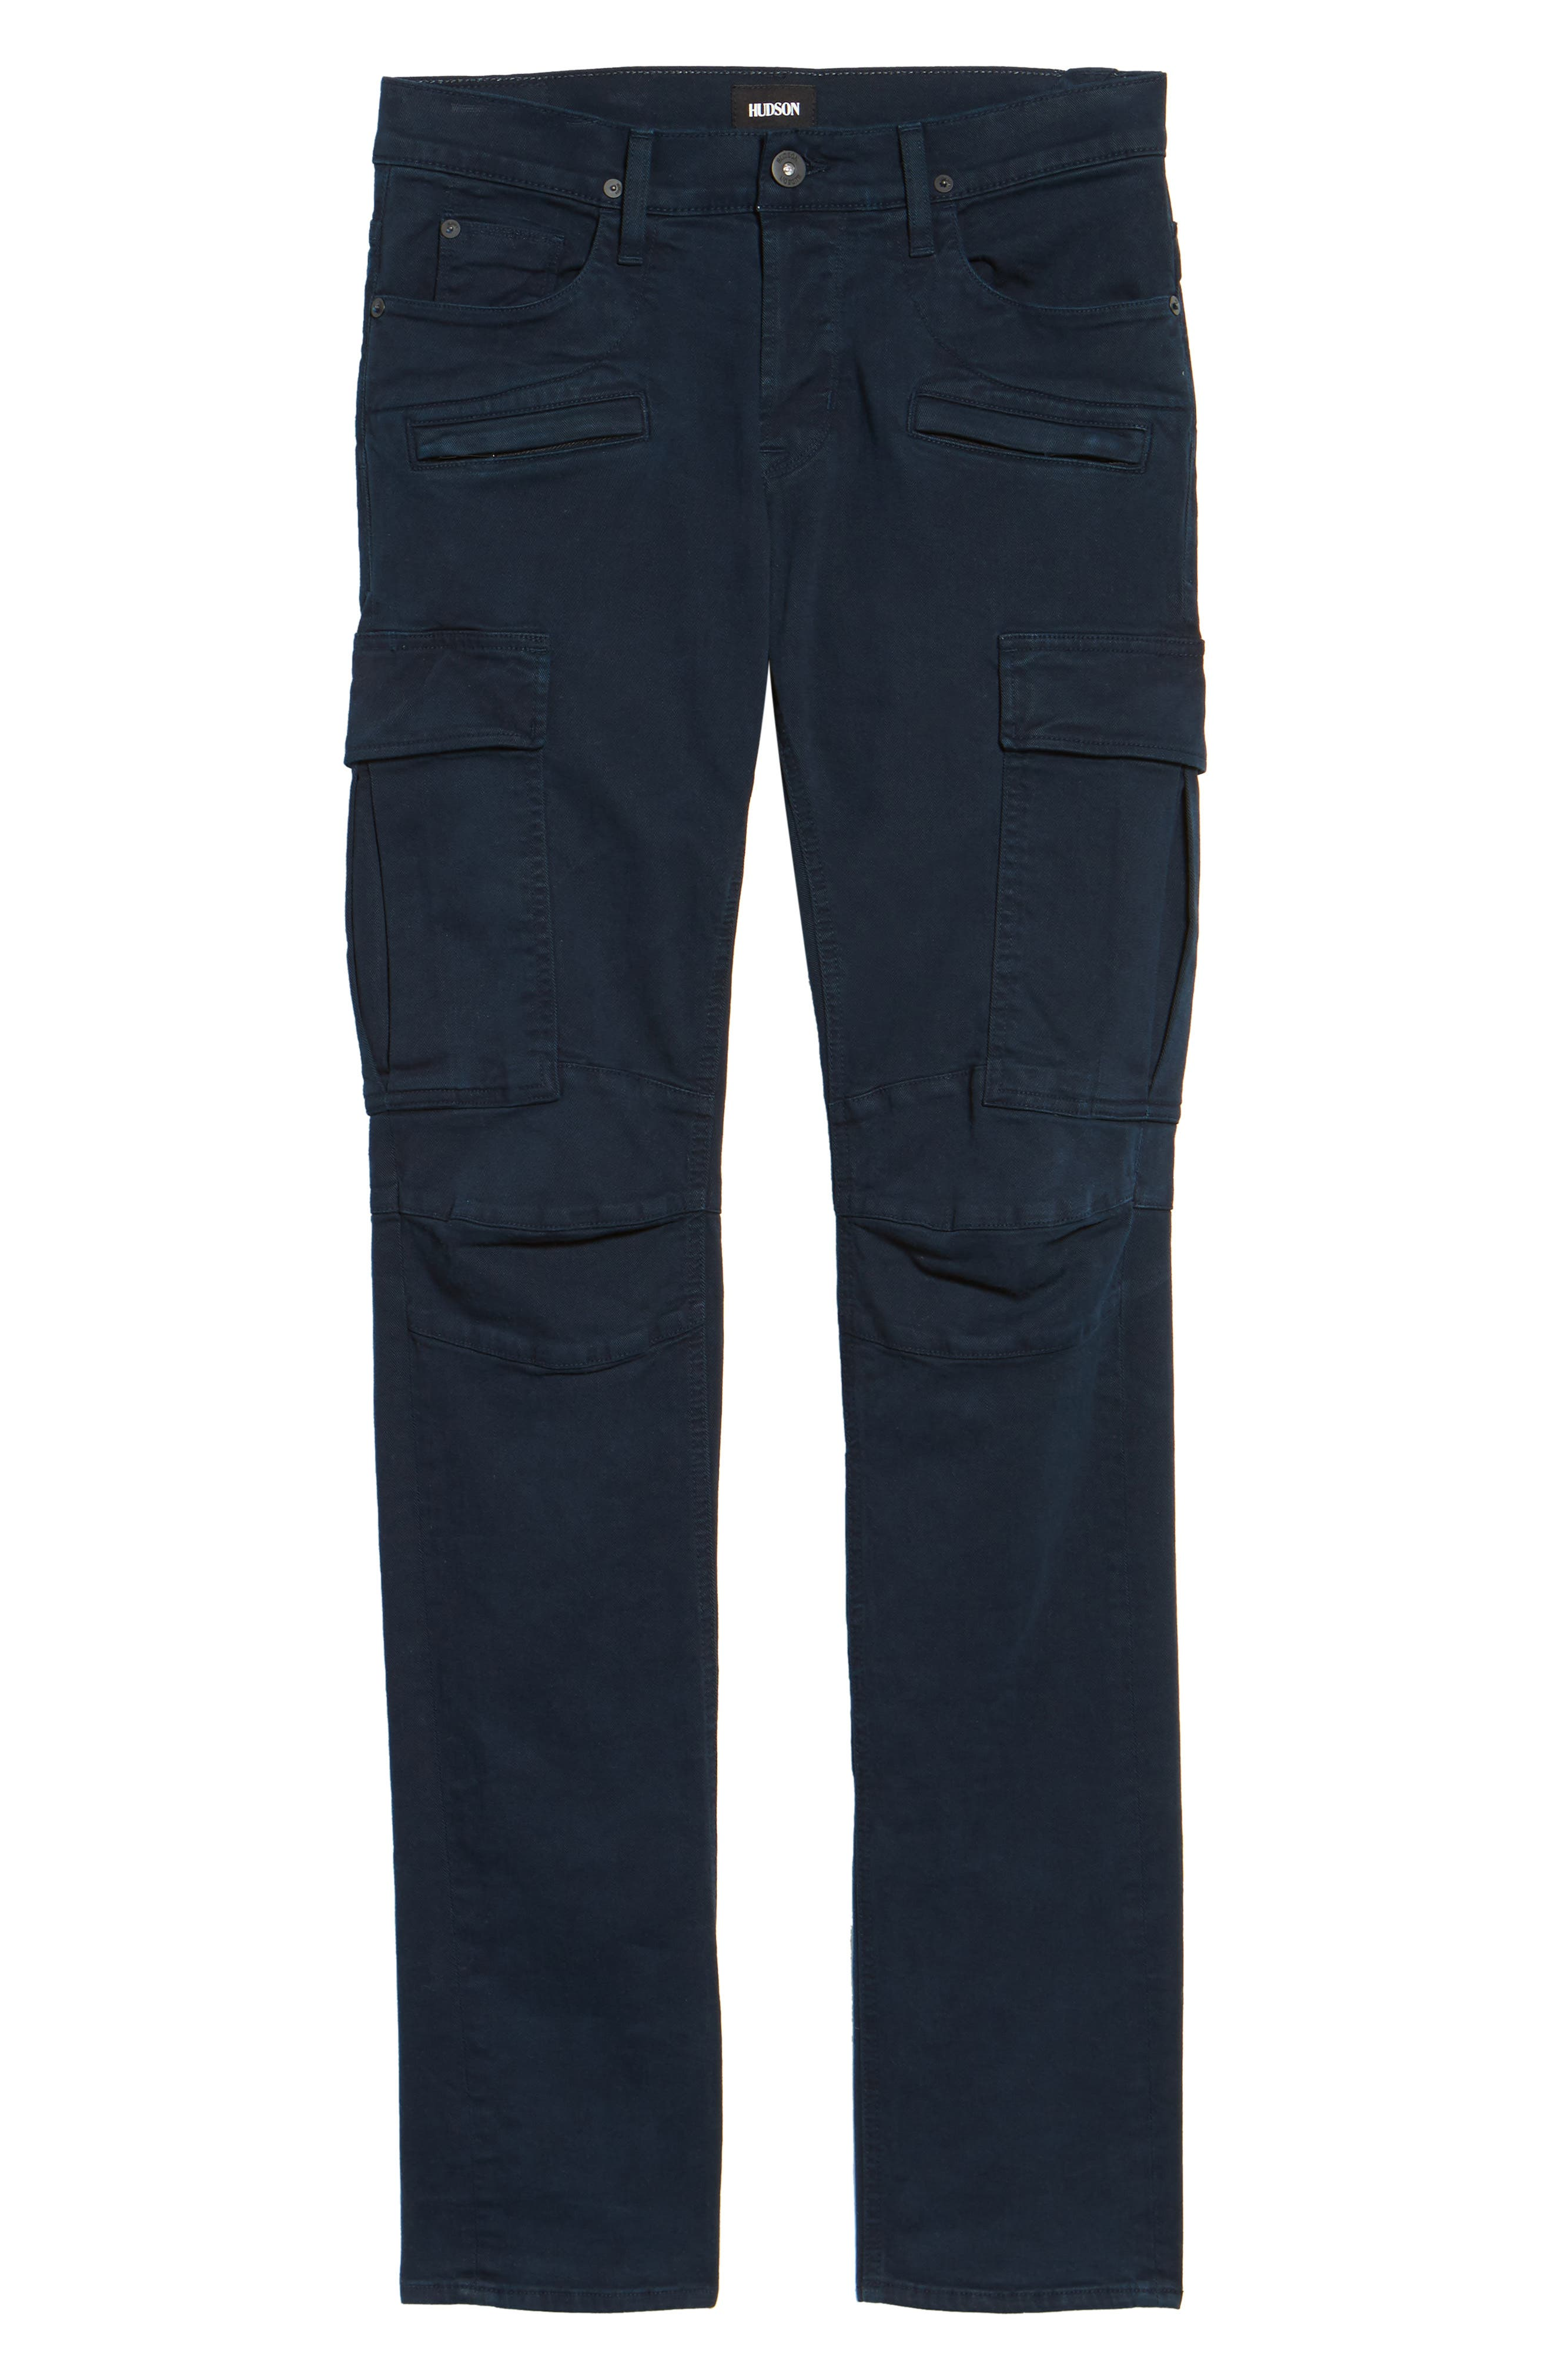 Greyson Cargo Biker Skinny Fit Jeans,                             Alternate thumbnail 6, color,